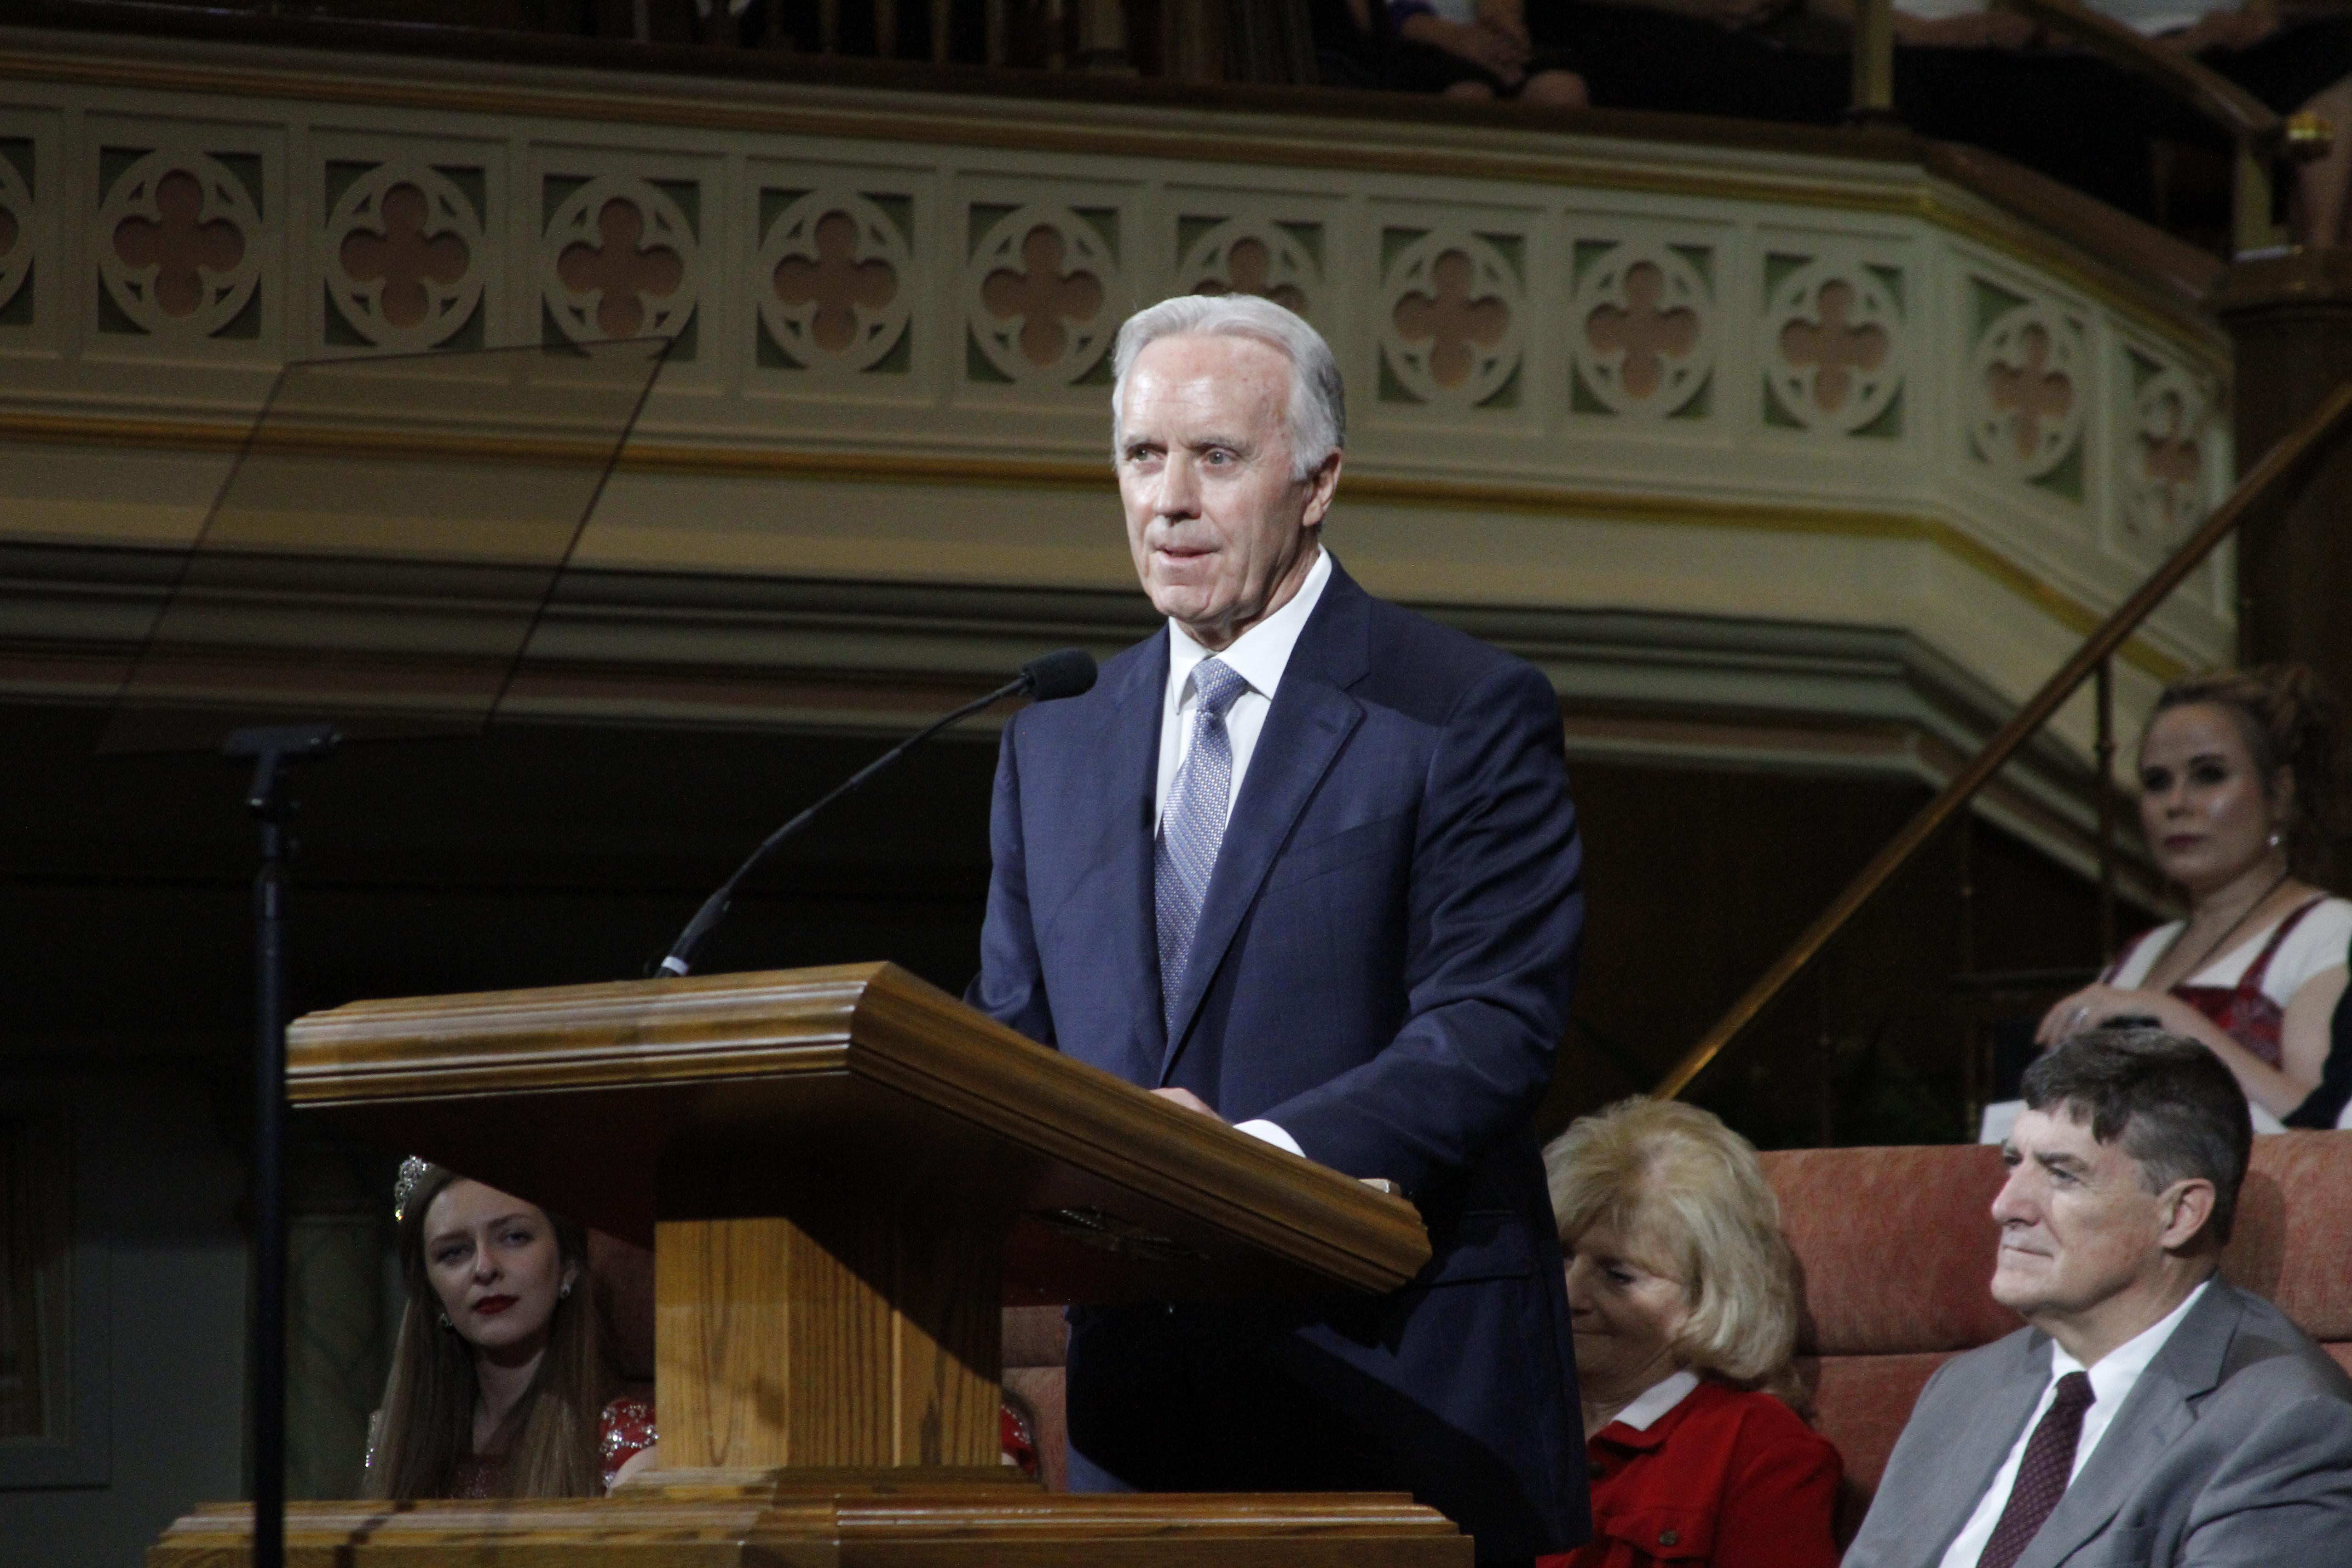 Elder Lawrence E. Corbridge, a General Authority Seventy, speaks at the Days of '47 Sunrise Service in the Assembly Hall on Temple Square July 24, 2019.